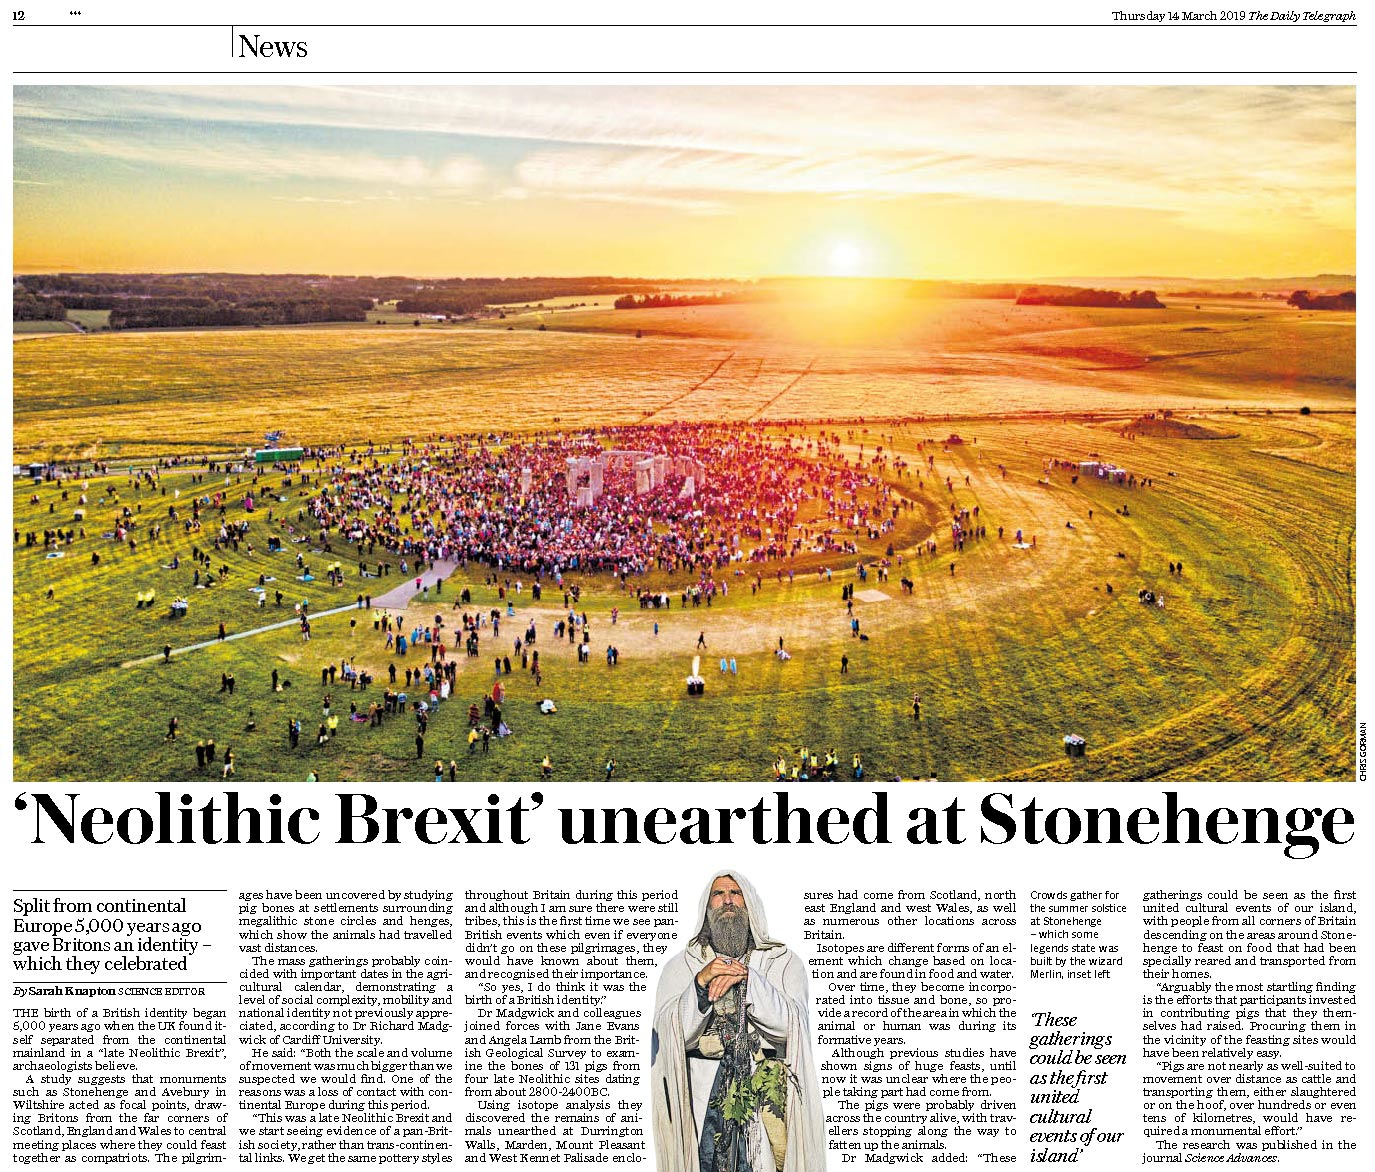 Daily Telegraph, March 2019